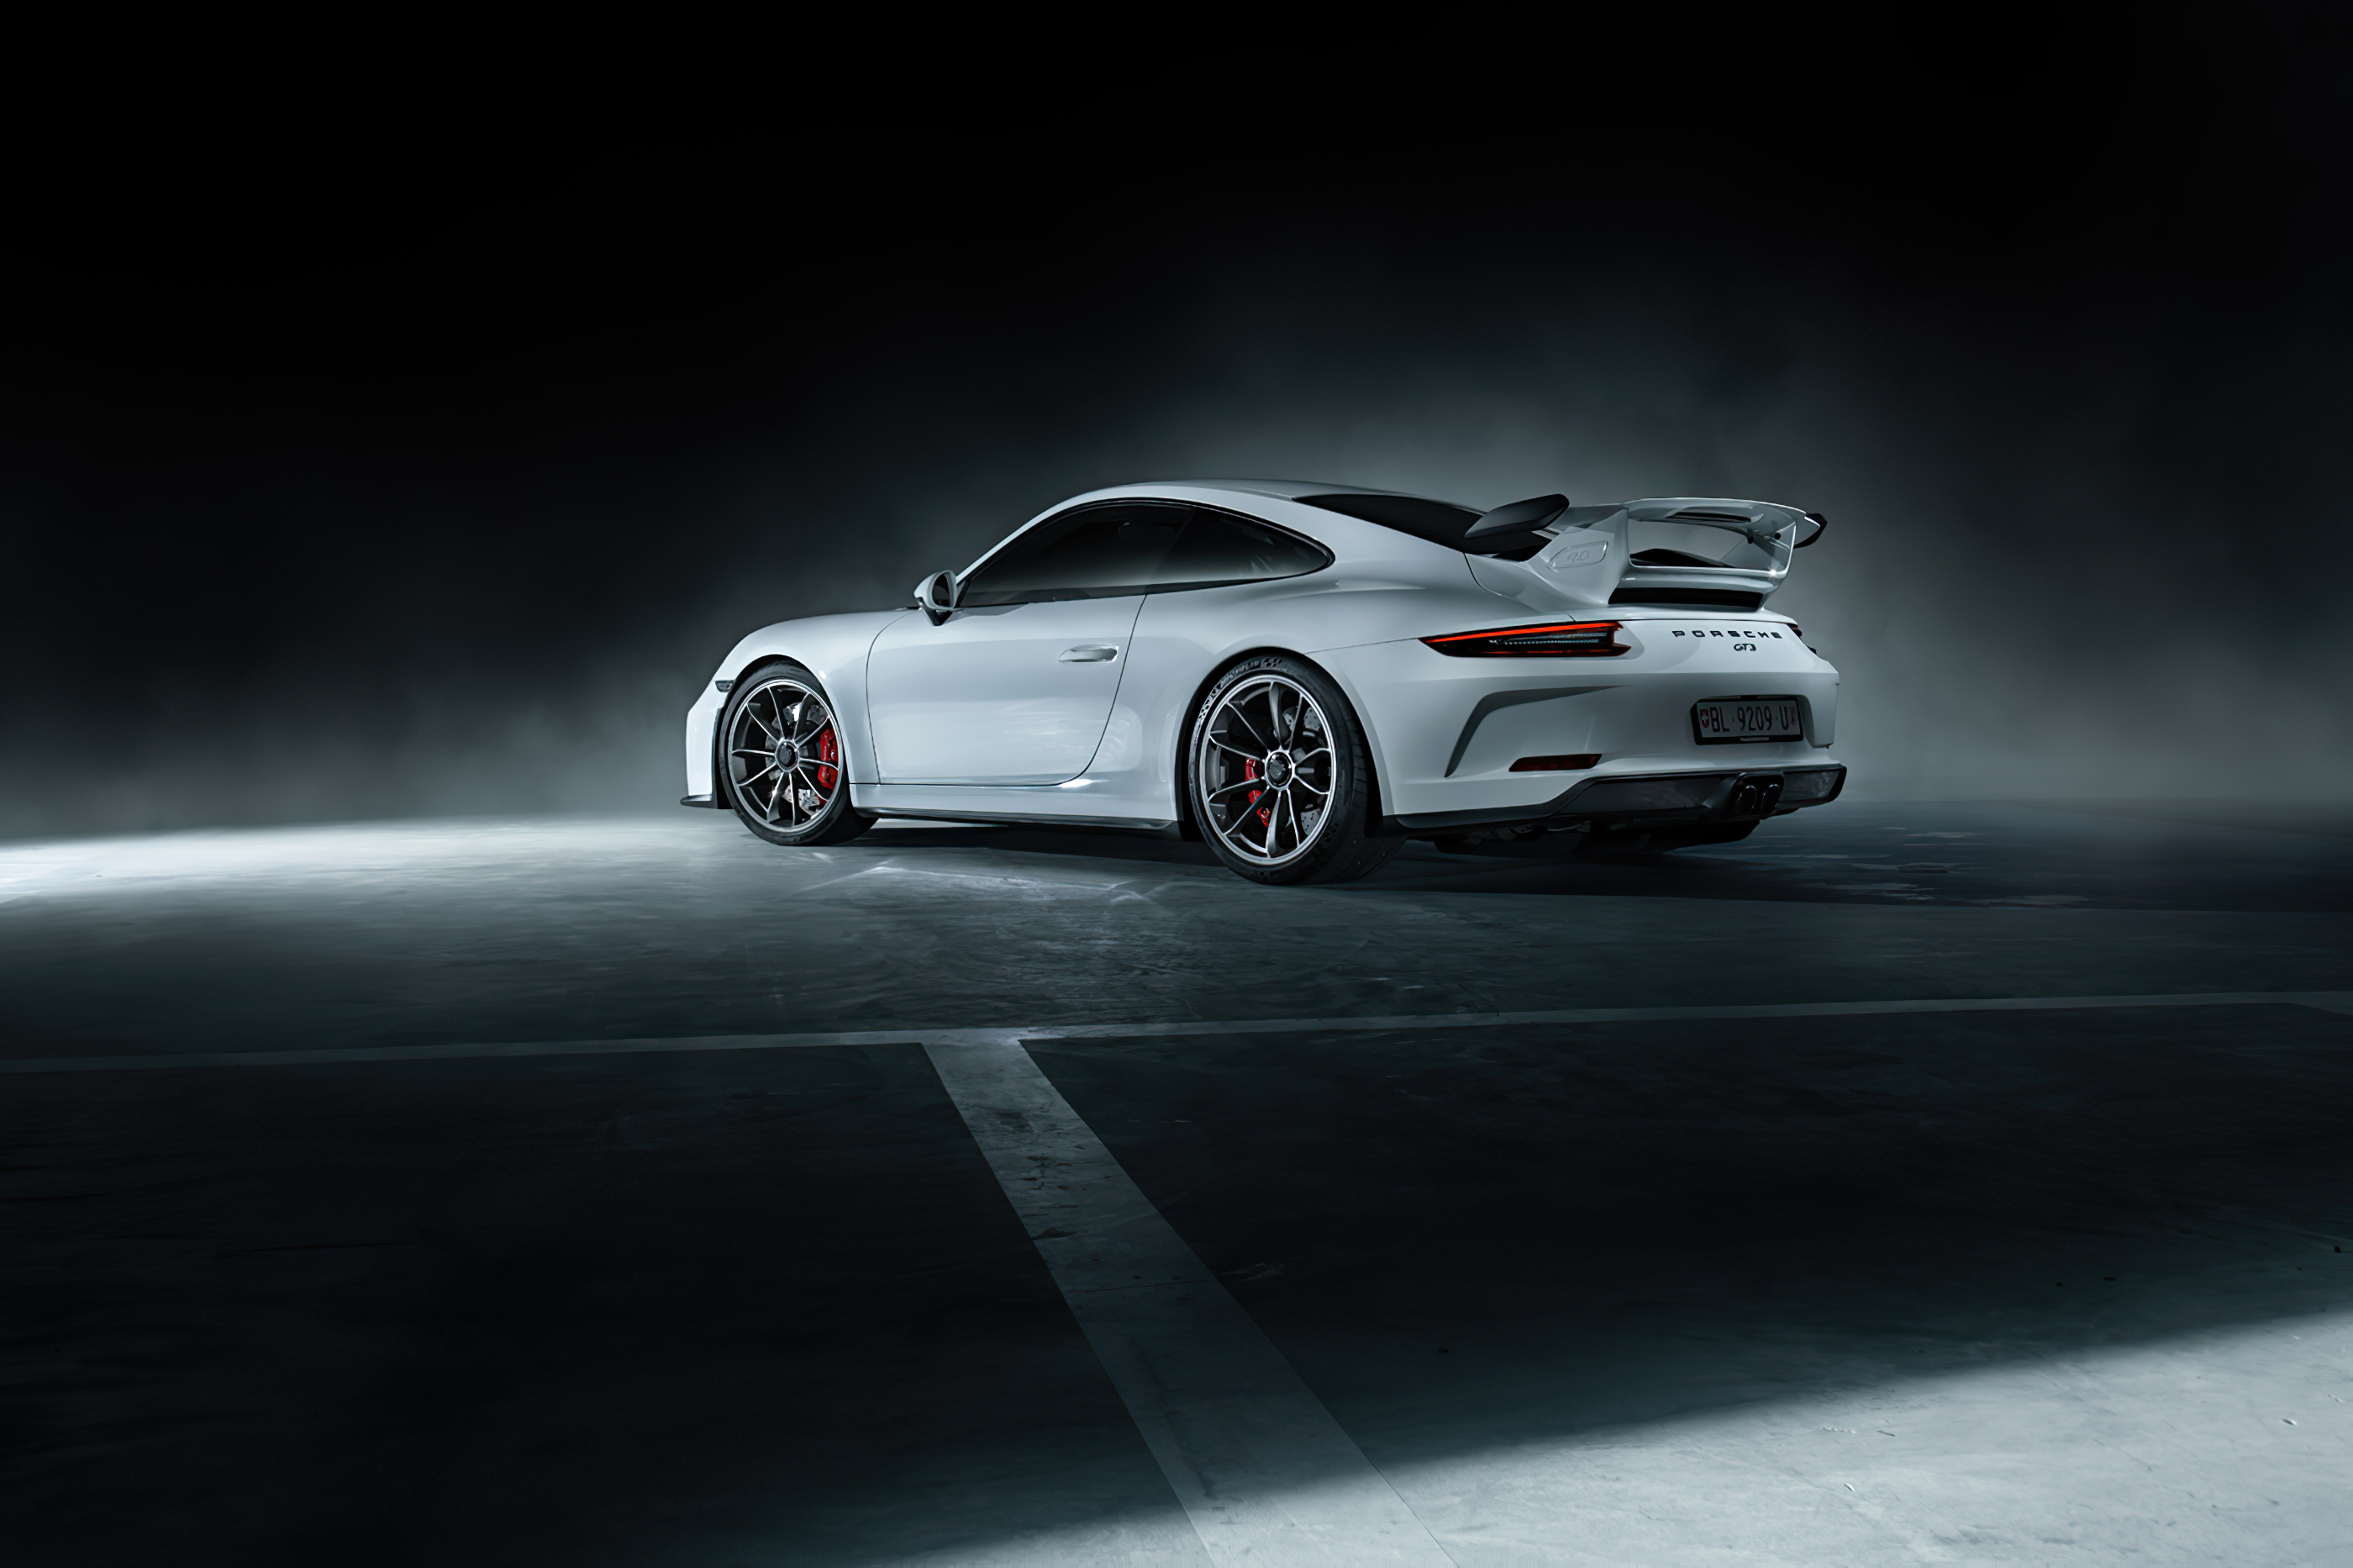 1920x1080 Porsche 911 Gt3 Car Laptop Full Hd 1080p Hd 4k Wallpapers Images Backgrounds Photos And Pictures